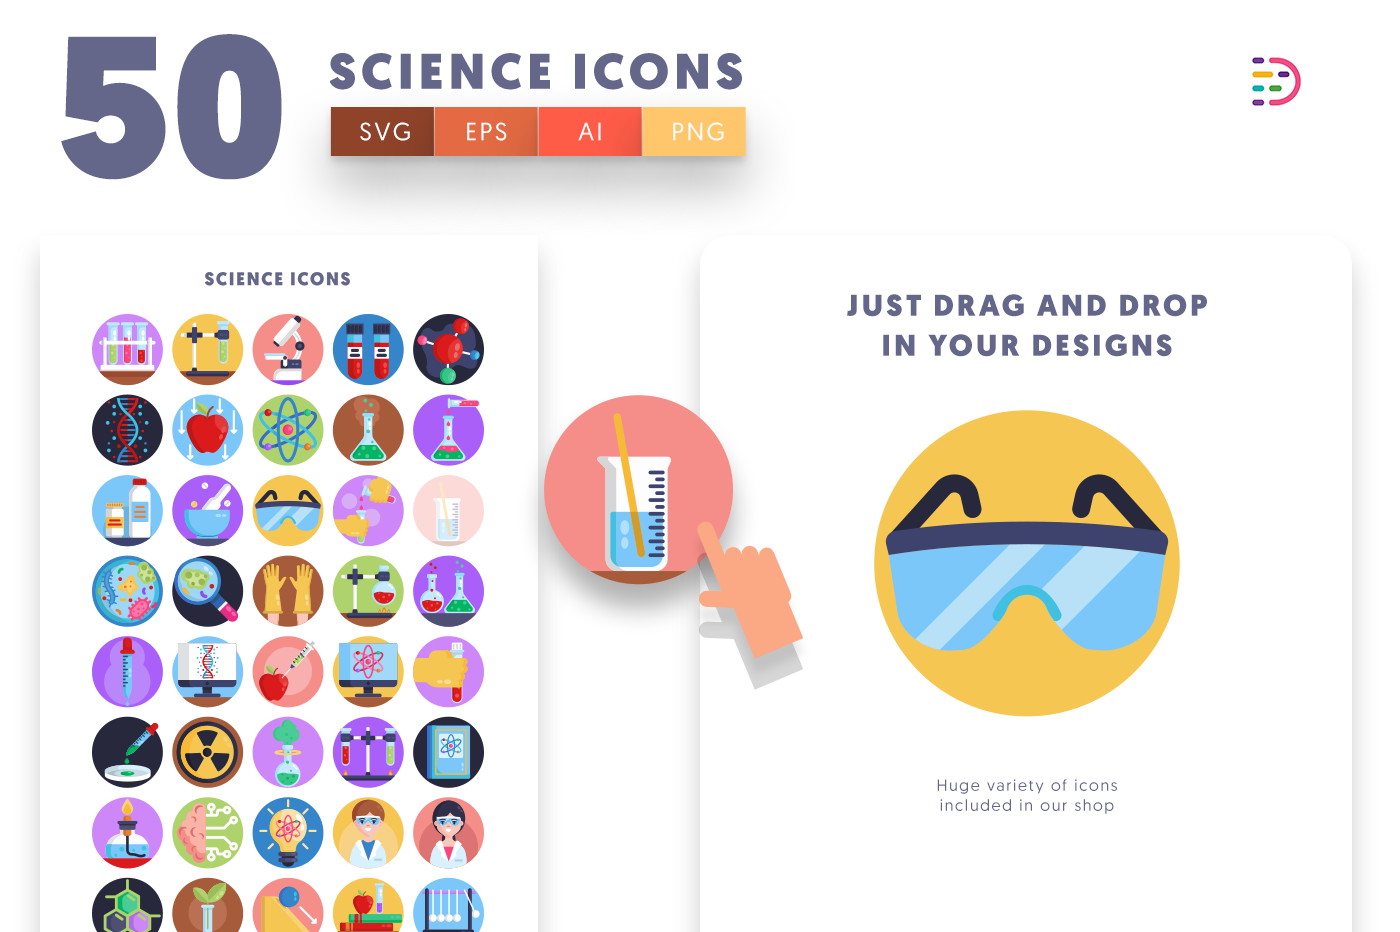 Drag and drop vector 50 Science Icons